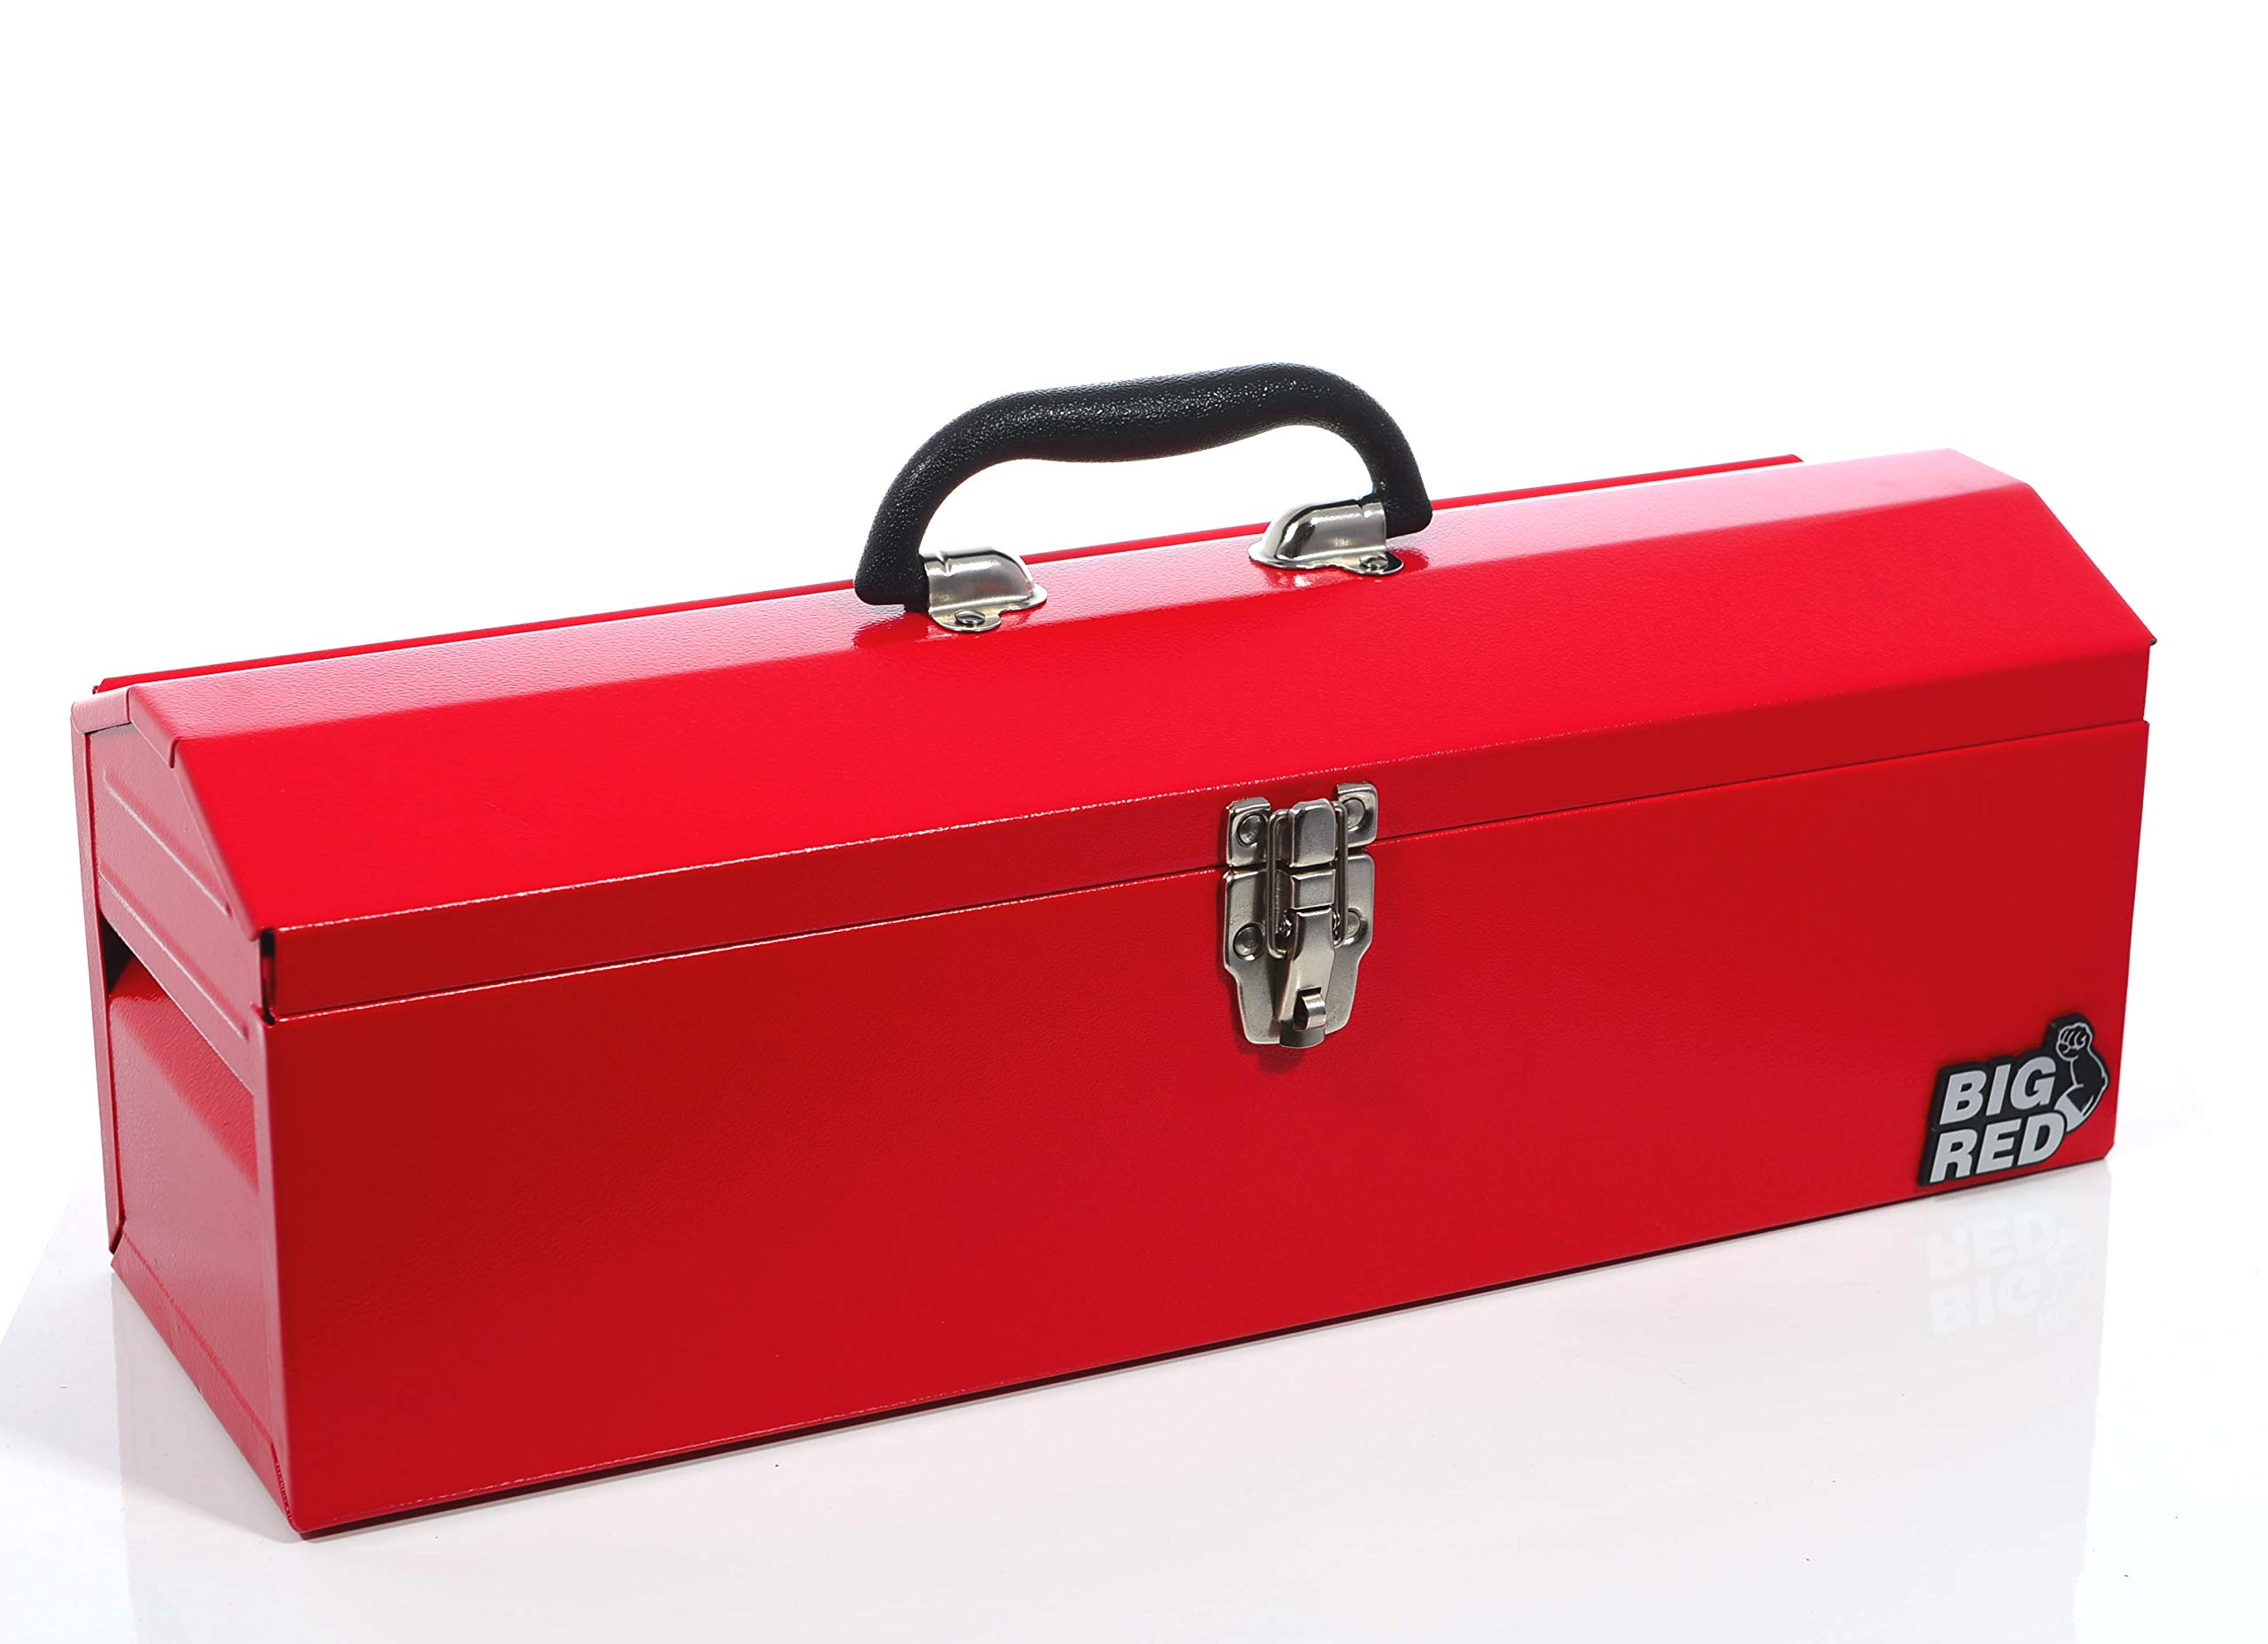 Torin Big Red 19'' Portable Steel Tool Box with Removable Tray, Red by Sherman